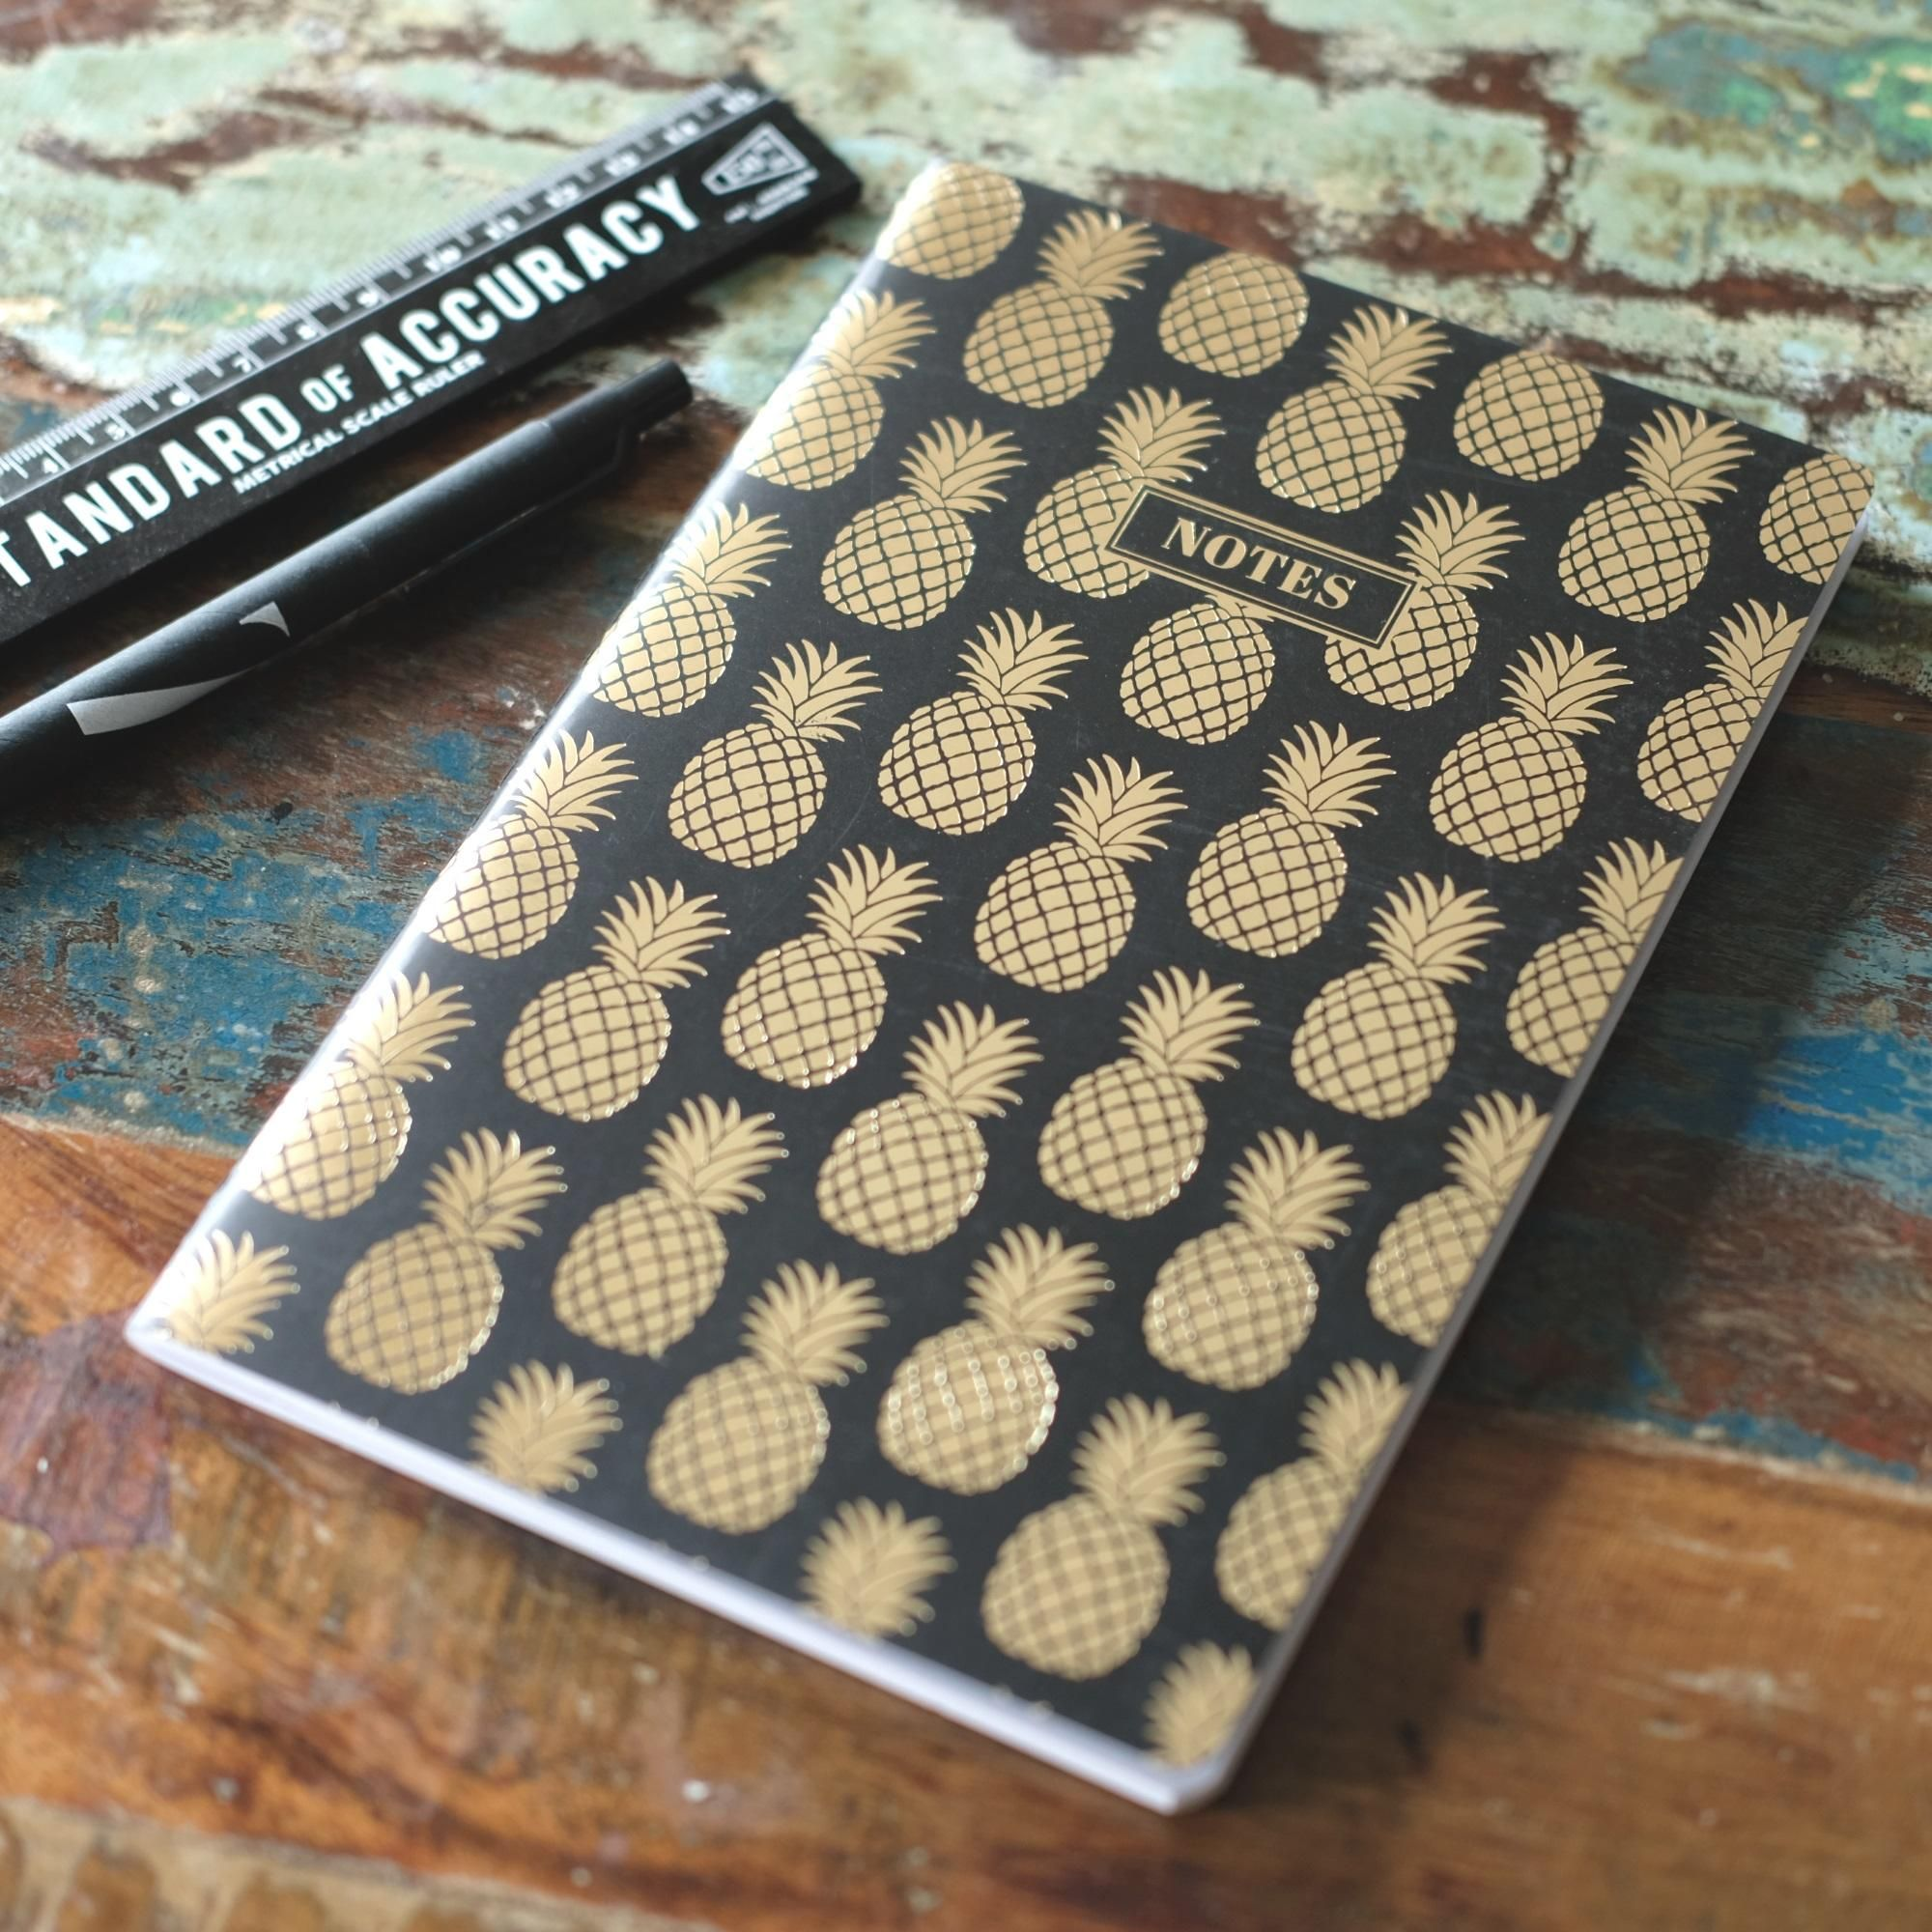 Gold pineapple notebook at albert u moo design project monochrome